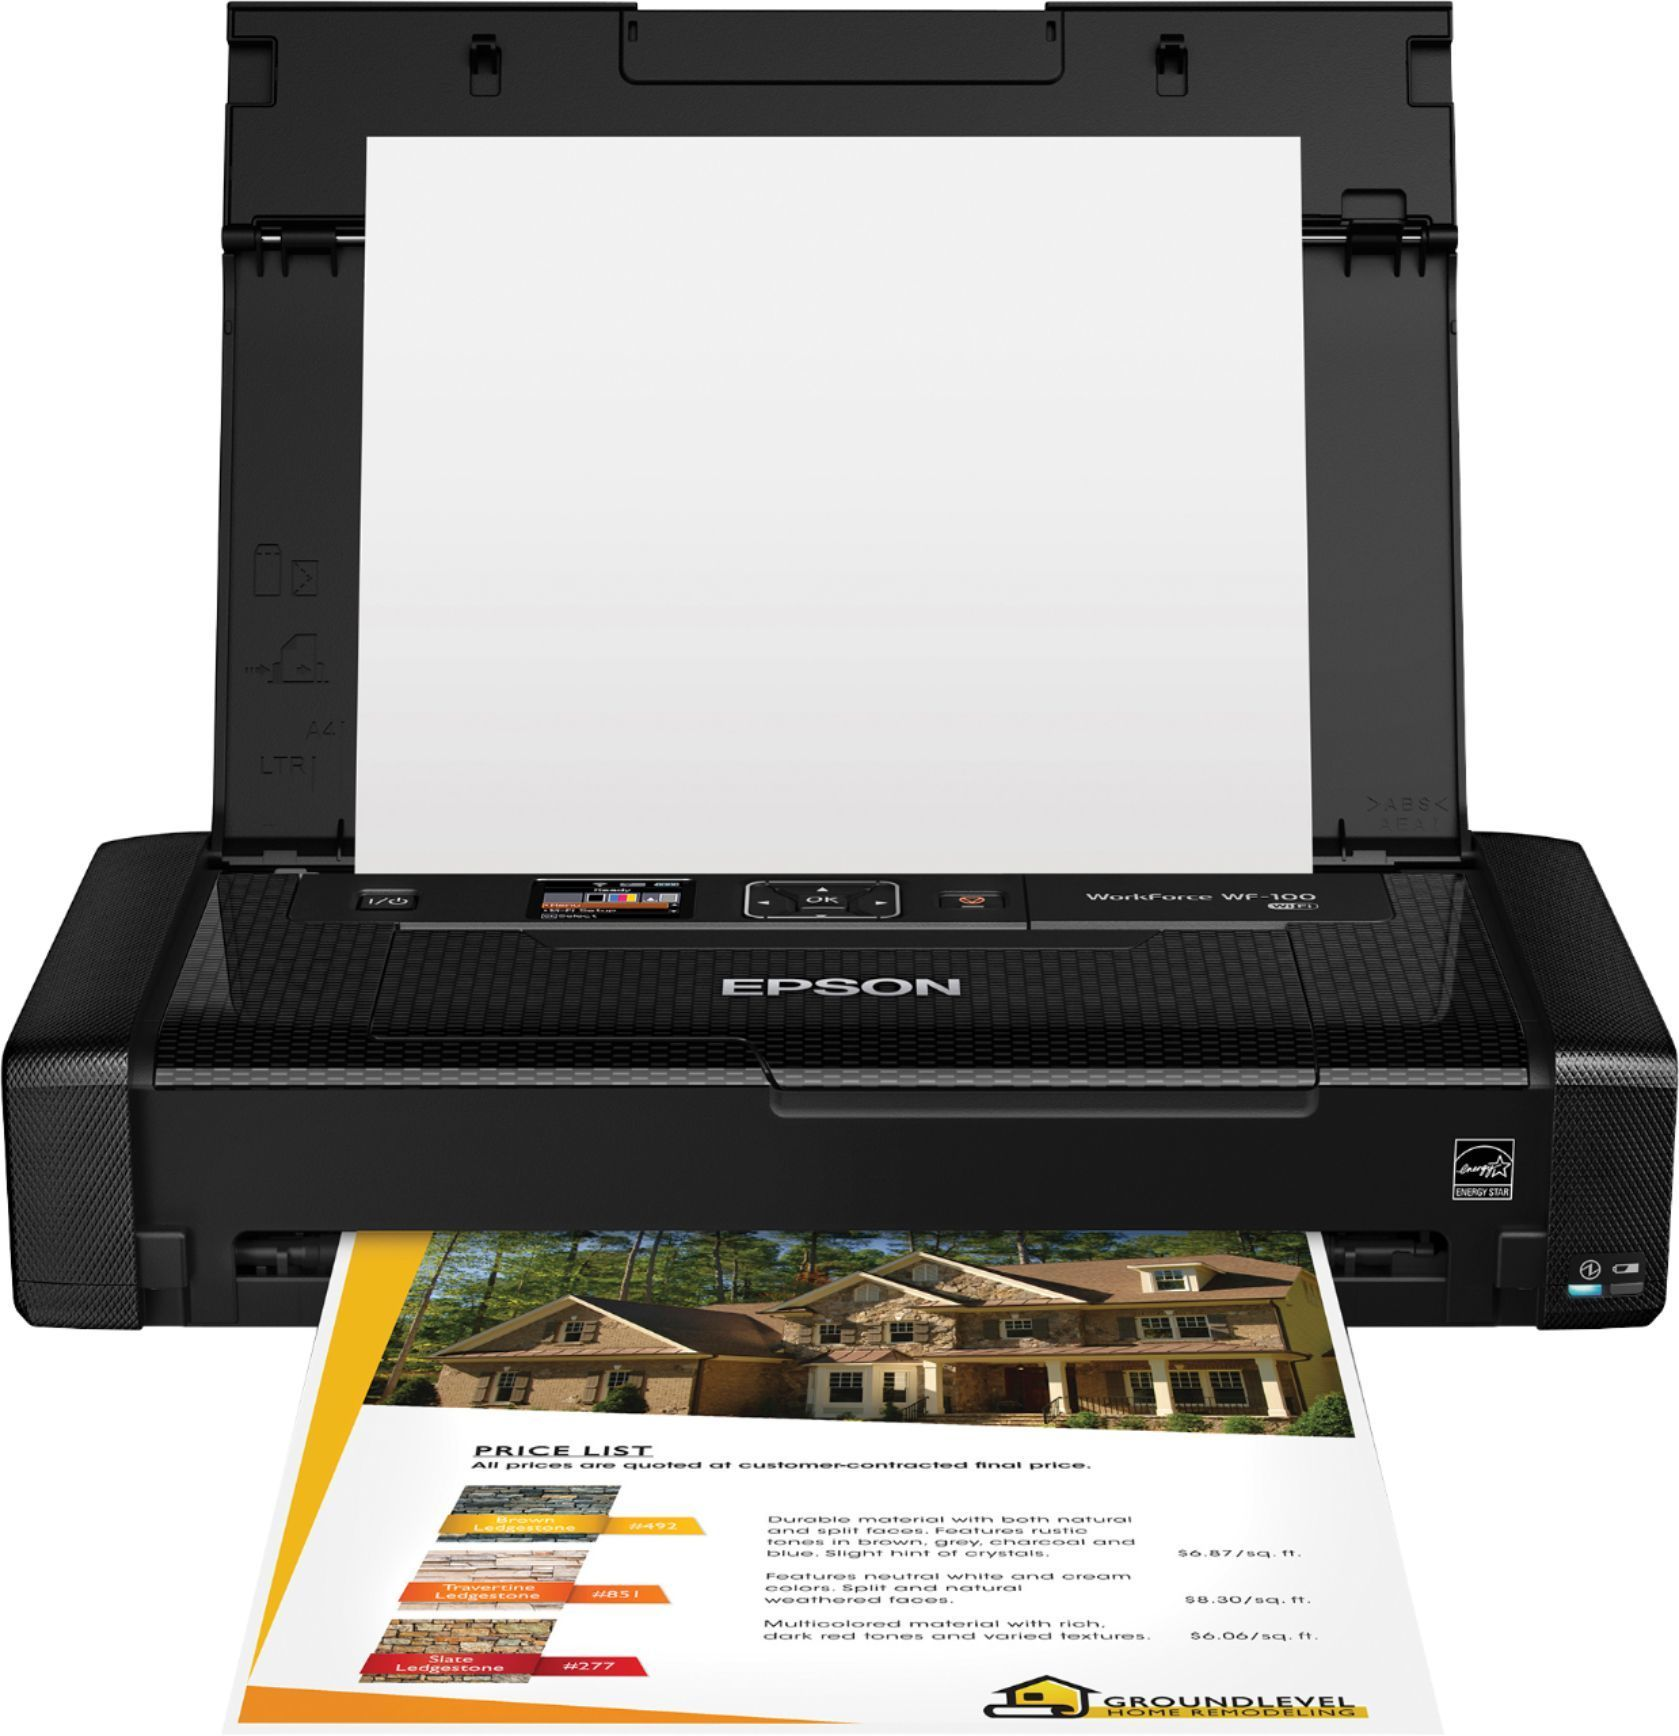 Epson WorkForce WF-100 Wireless Mobile Printer